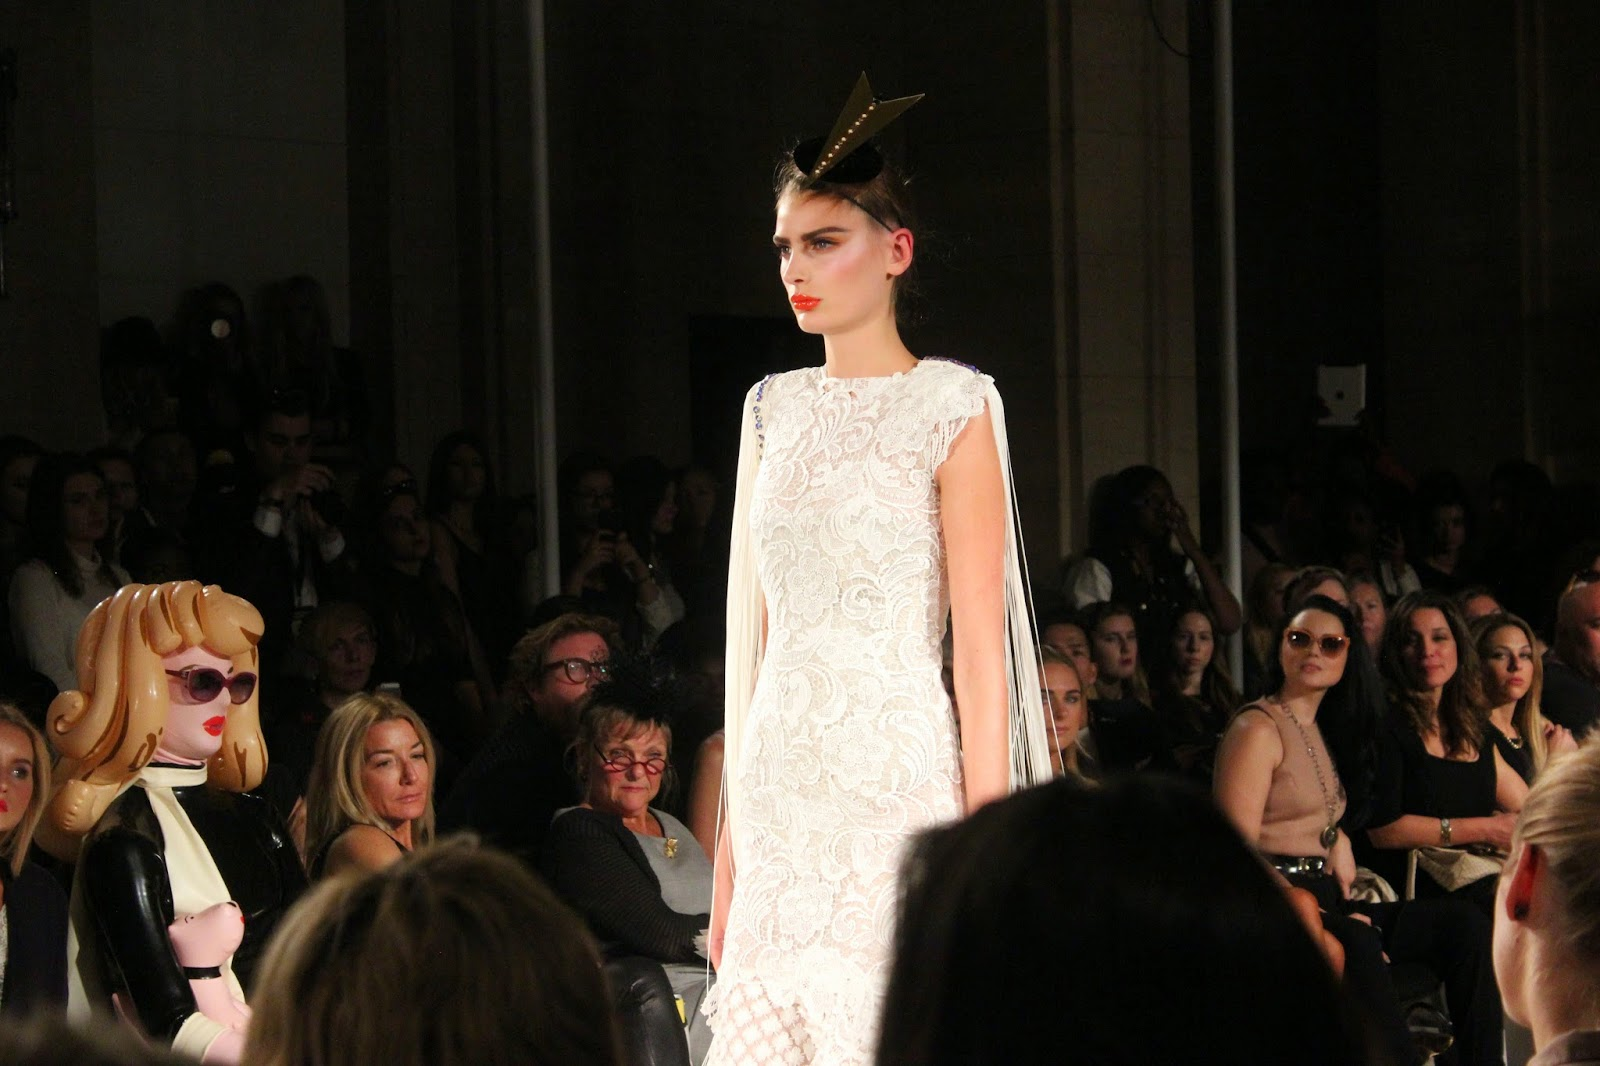 london-fashion-week-2014-lfw-spring-summer-2015-blogger-fashion-freemasons hall-fashion-scout-ashley-isham-catwalk-models-dress